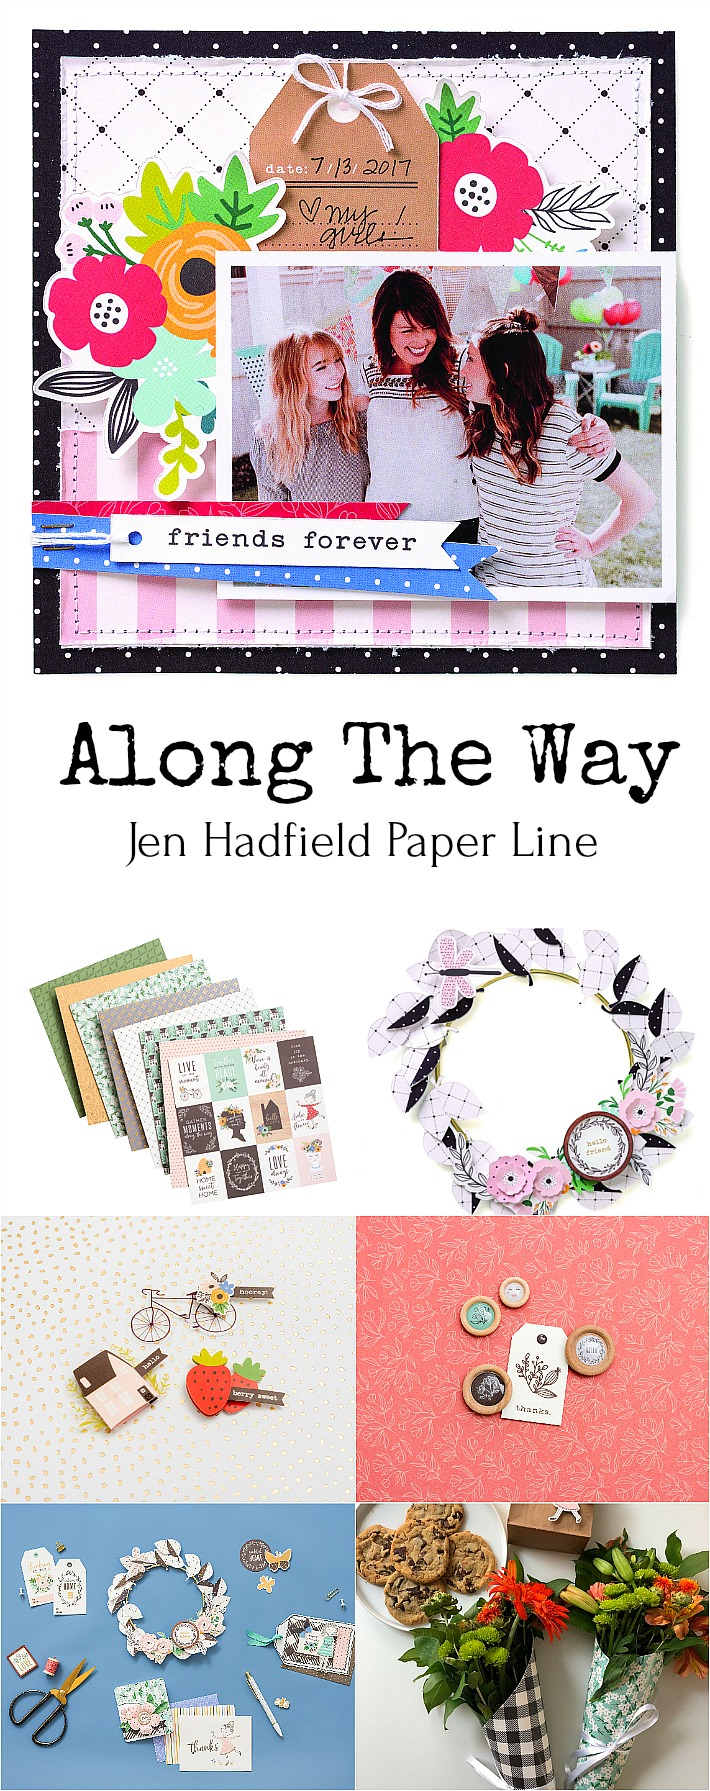 Jen Hadfield Along The Way is a happy line full of adorable icons, paper, tags and images that are perfect for scrapbooking, card-making, paper crafts and more! Come see the creative ideas!